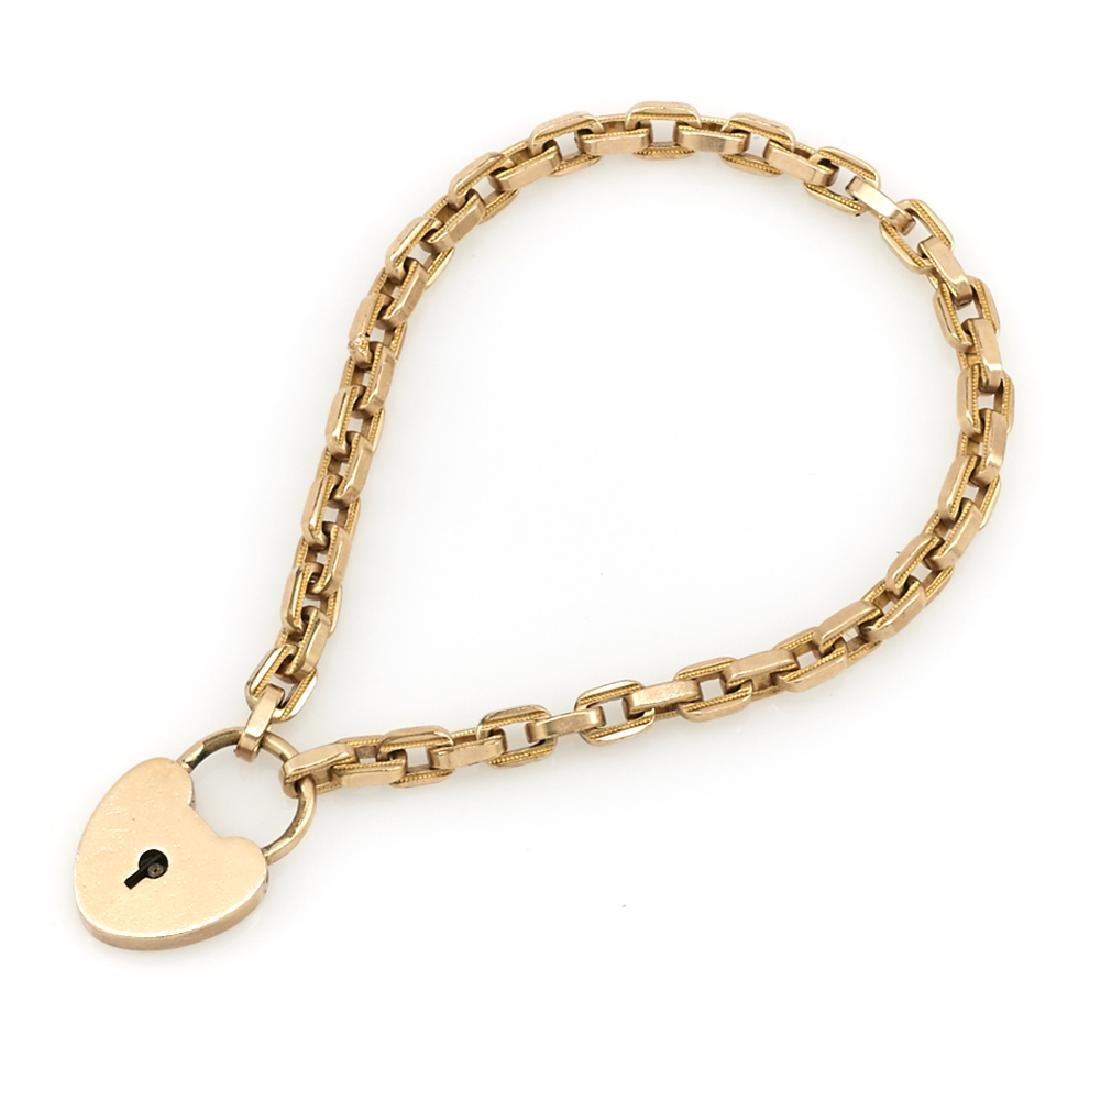 9k Rose gold Victorian heart lock bracelet with curb